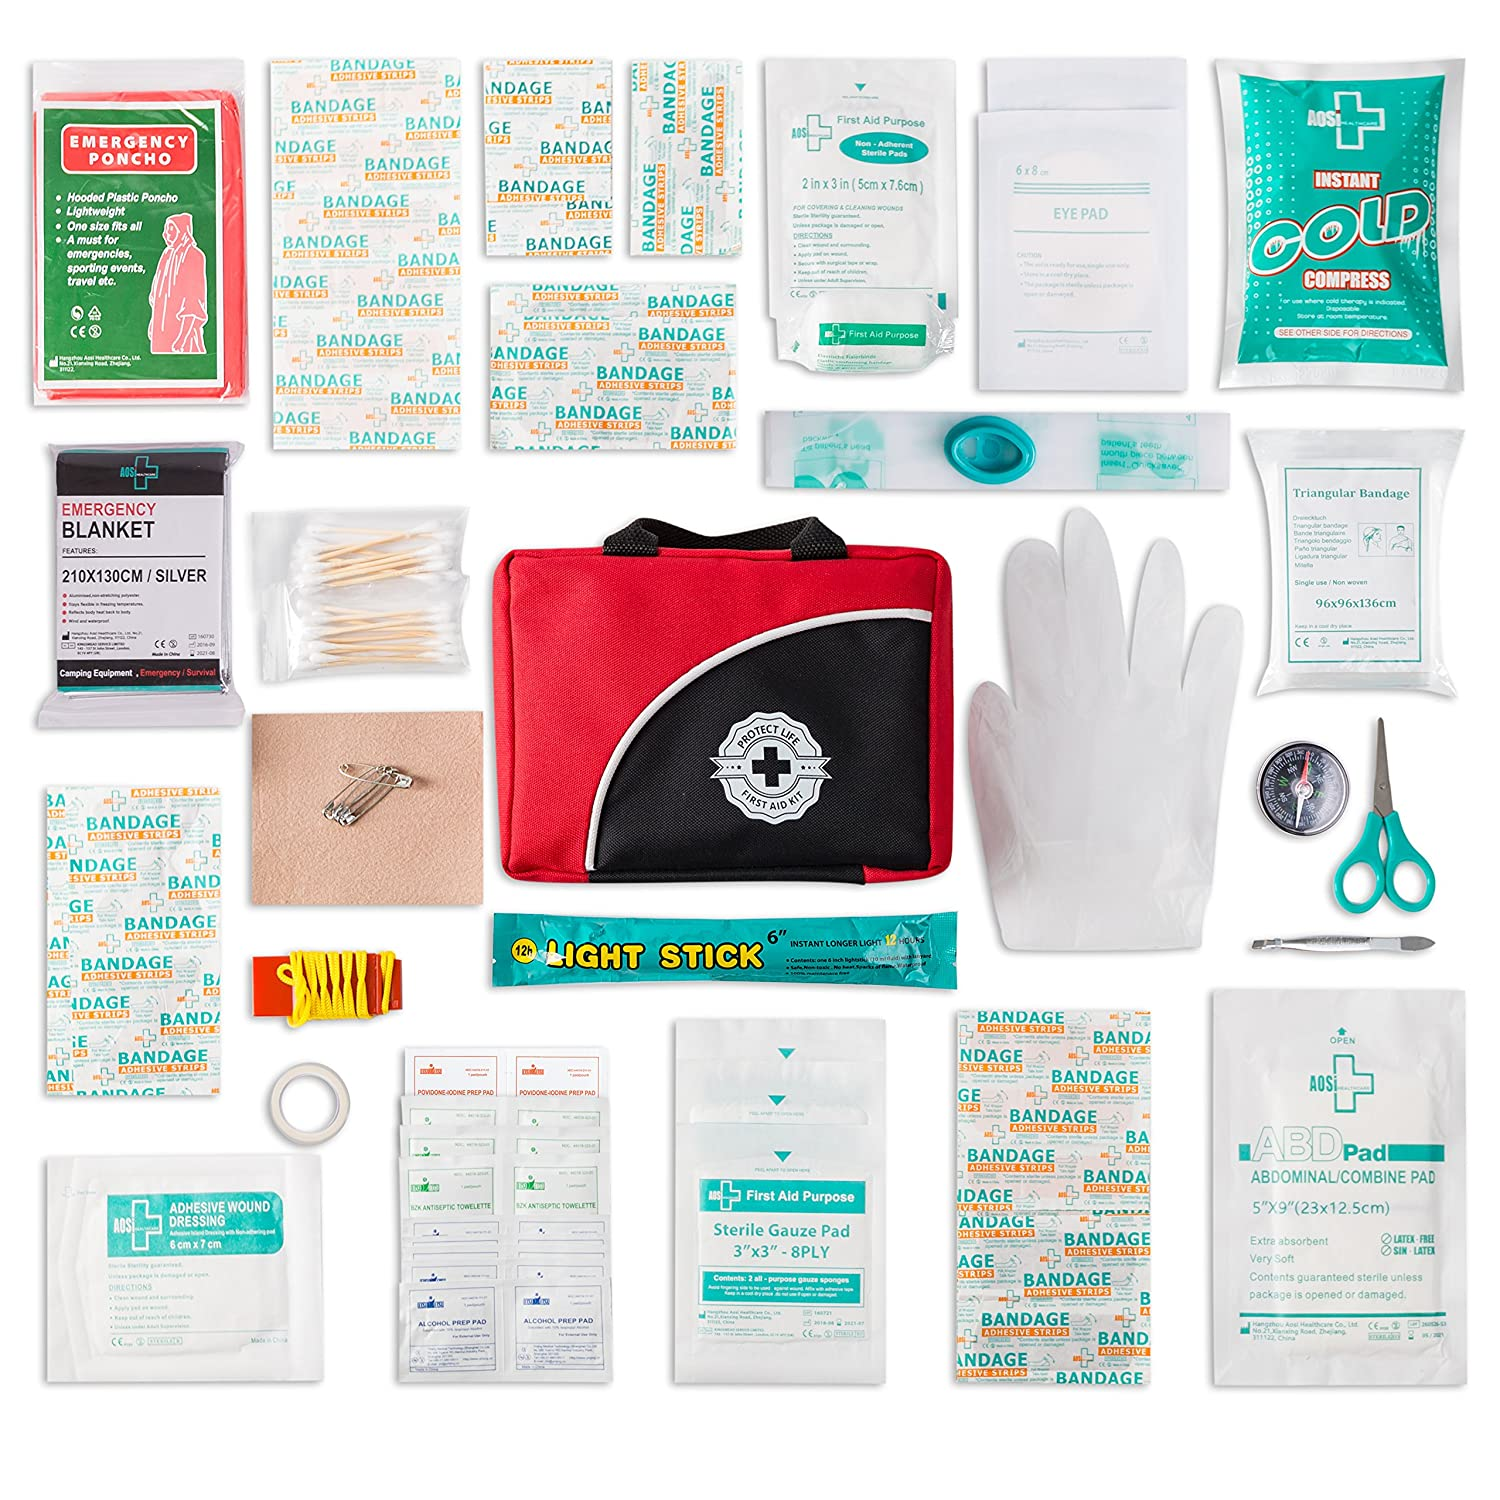 2016 602 215 399 unique contemporary - Amazon Com First Aid Kit 150 Piece For Car Travel Camping Home Office Sports Survival Complete Emergency Bag Fully Stocked With High Quality